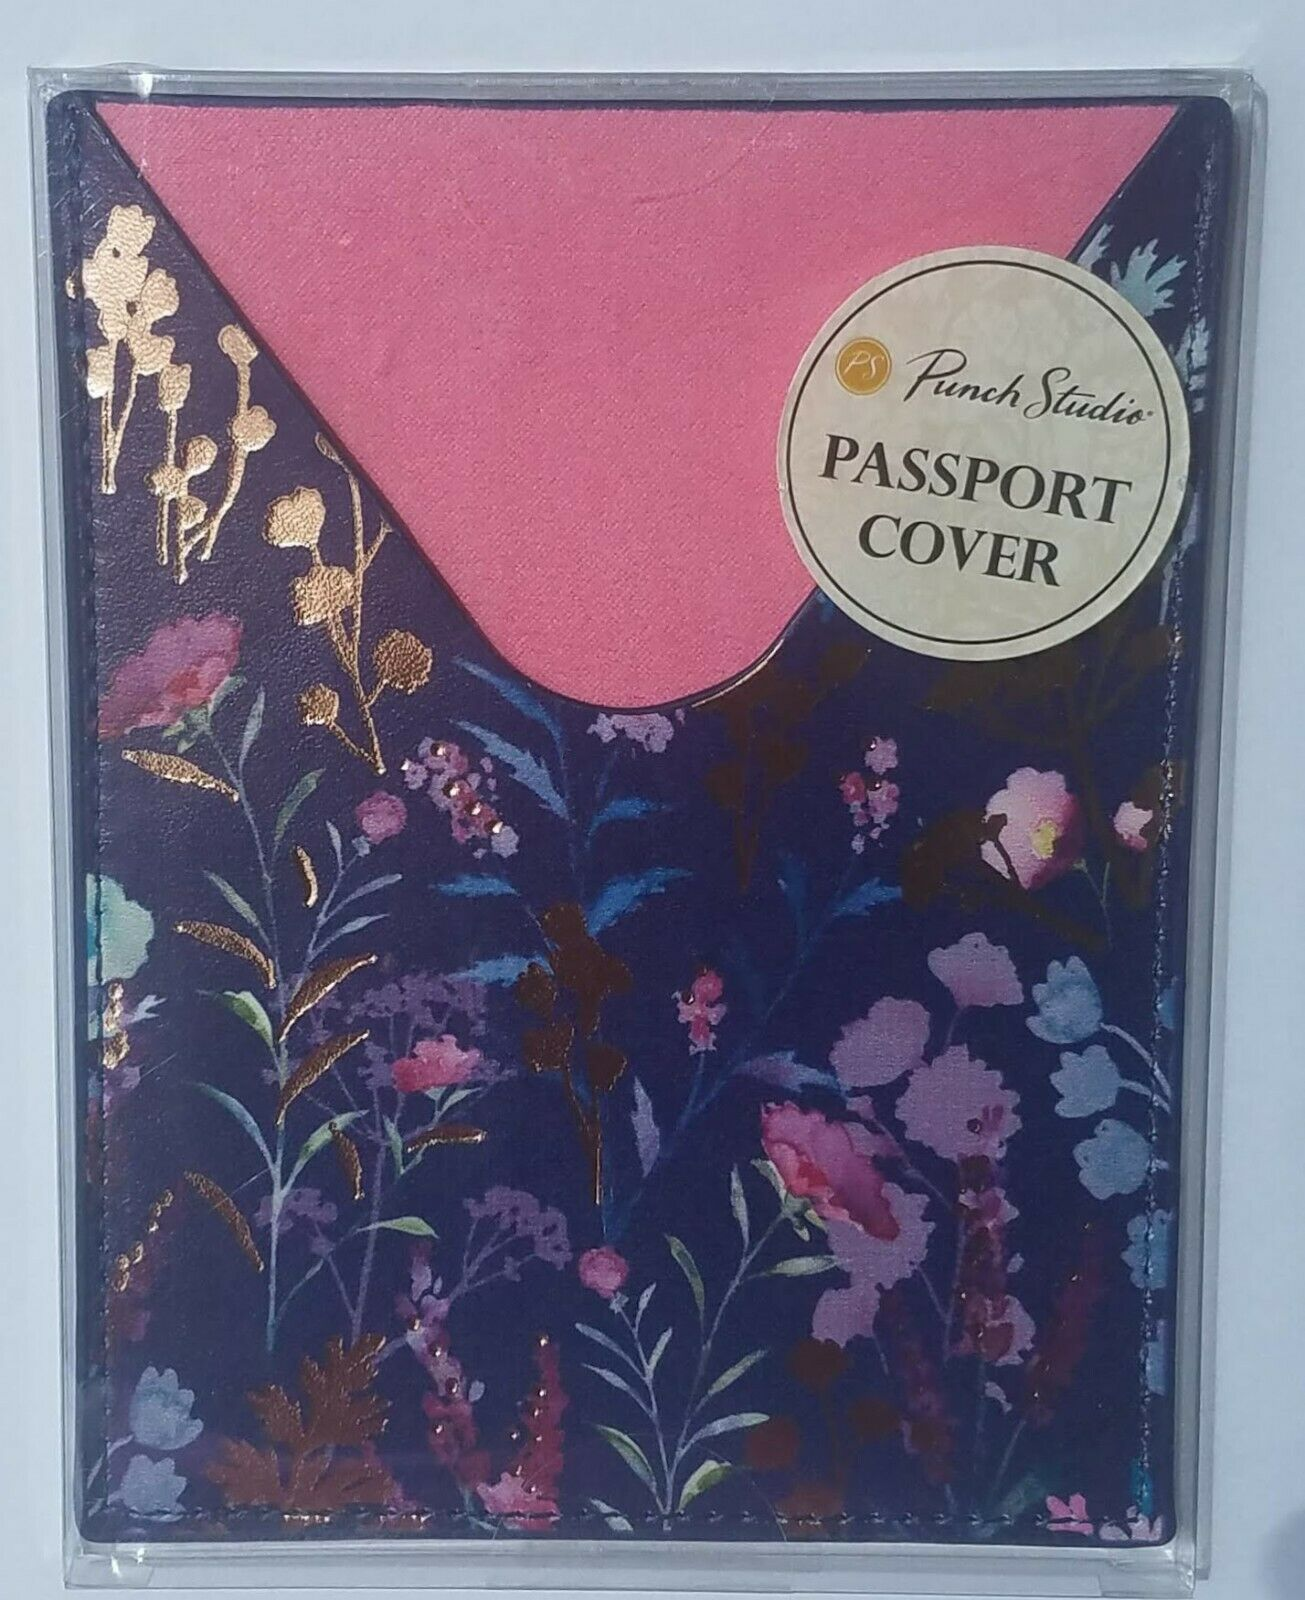 Punch Studio Travel Passport Cover Purple Wildflowers New With Tags